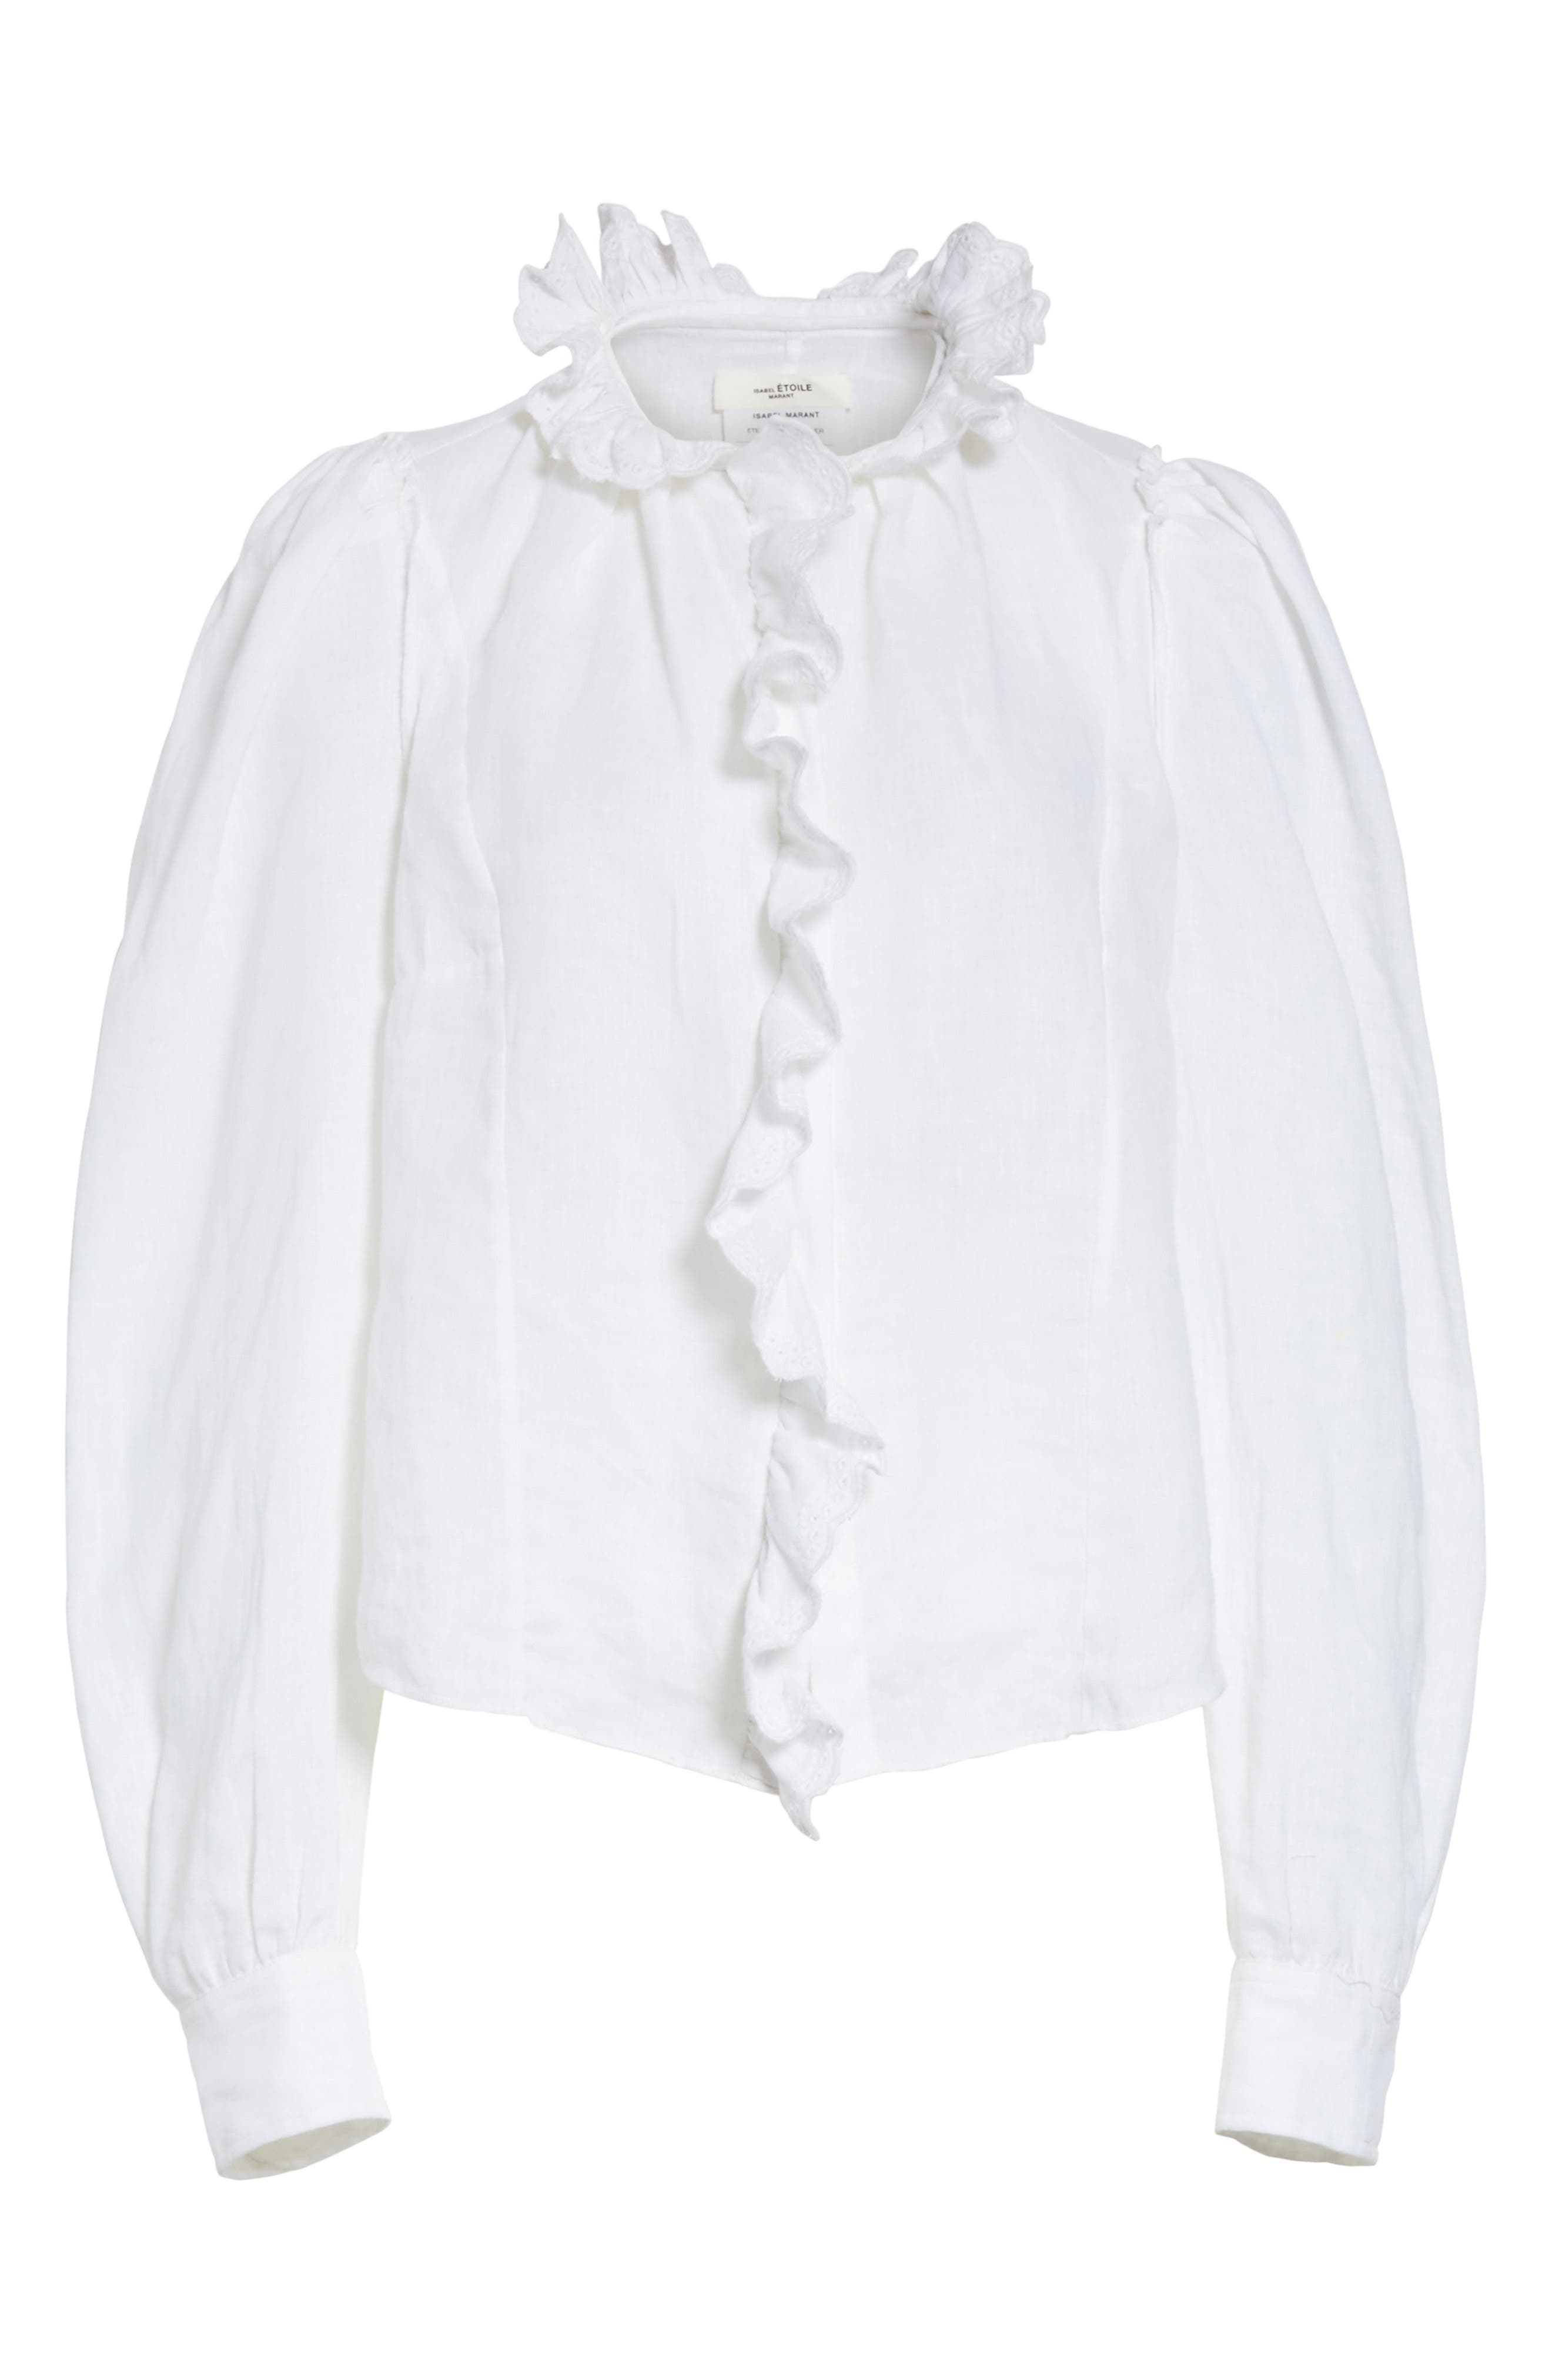 Isabel Marant Étoile Tauren Broderie Linen Shirt,                             Alternate thumbnail 6, color,                             White